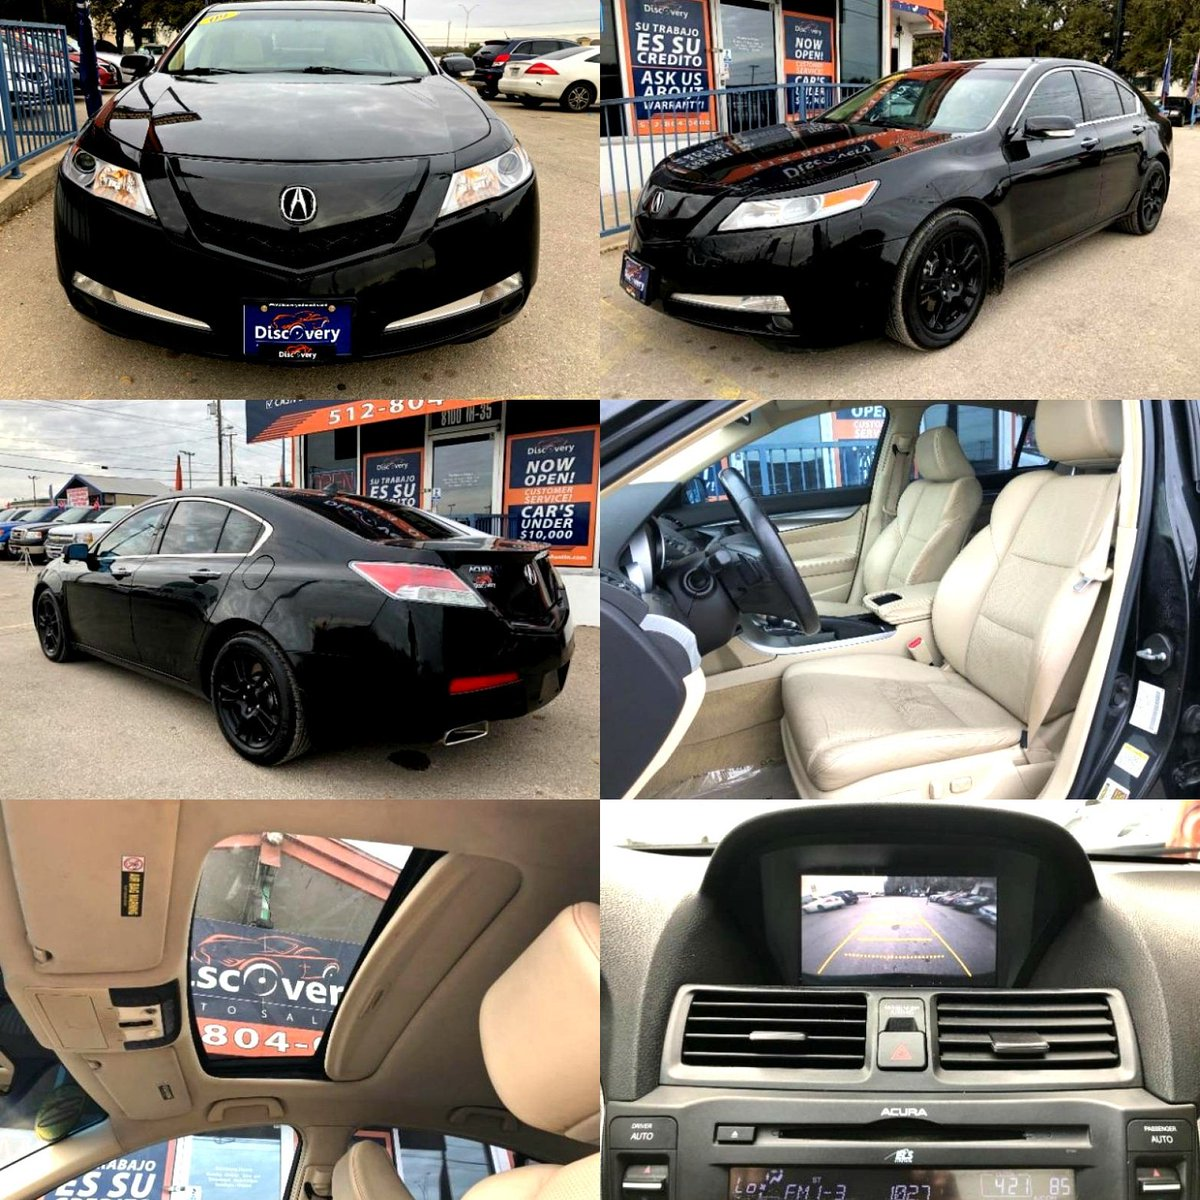 discovery auto sales on twitter special 2009 acura tl 5 speed at